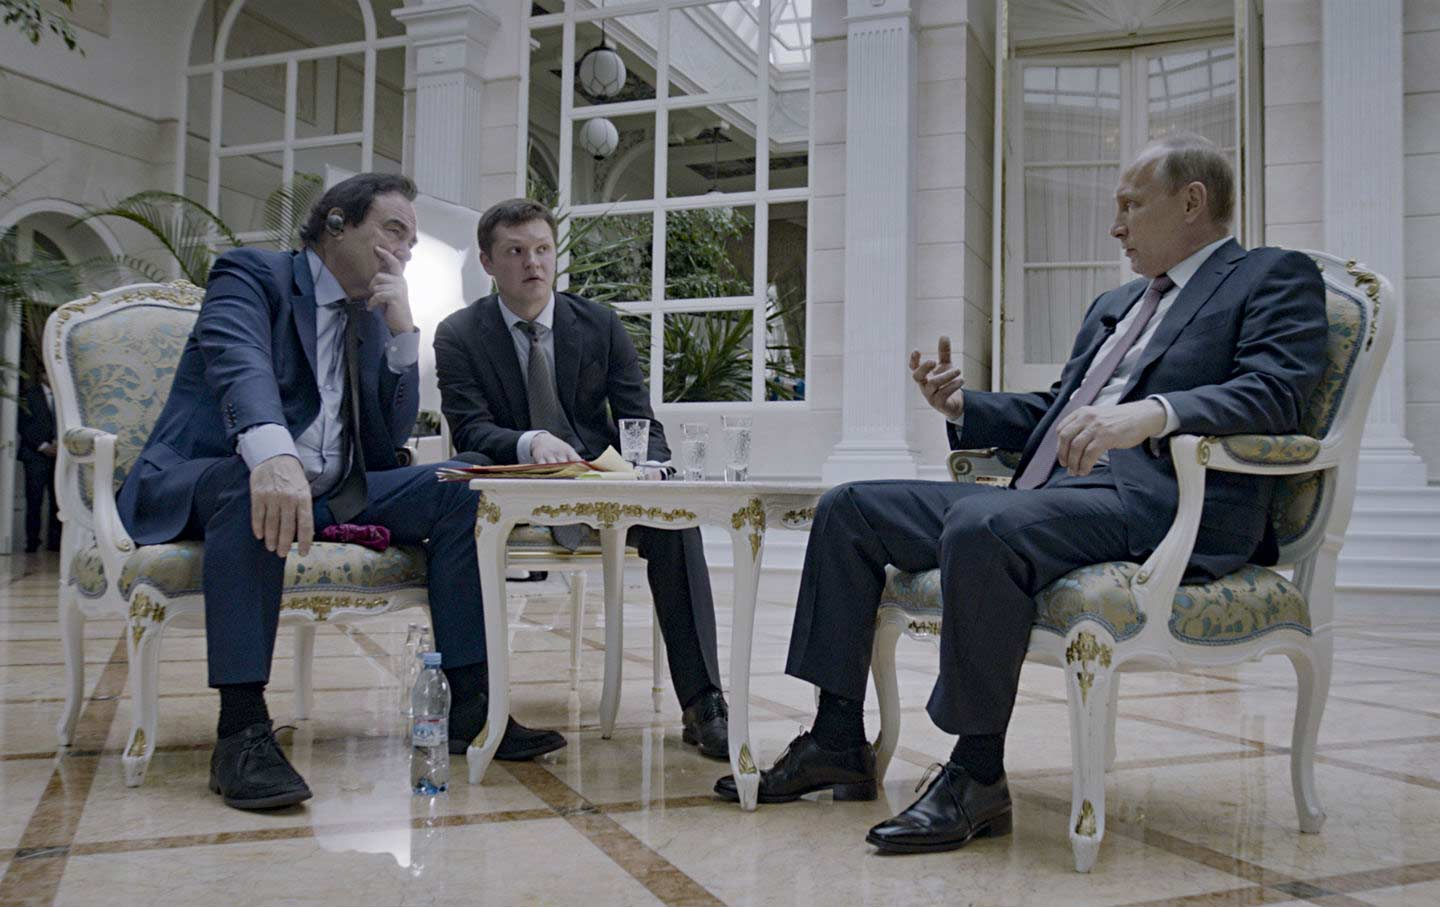 Oliver Stone, interpreter Sergei Chudinov, and Russian President Vladimir Putin in a scene from the Showtime documentary. (Komandir / Courtesy of Showtime)